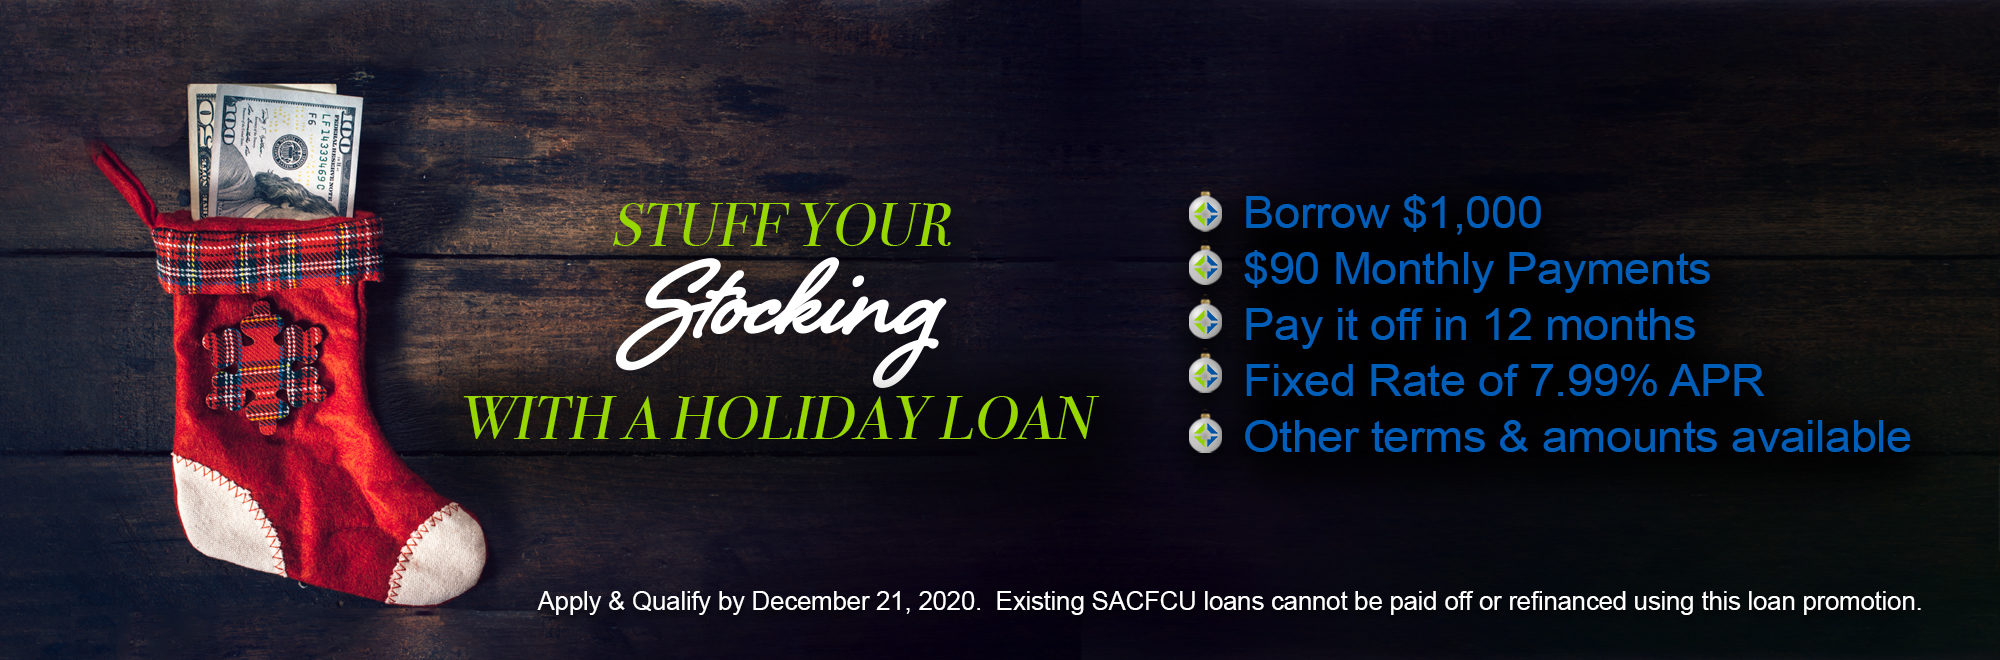 "Image of a Christmas stocking with text reading, ""Stuff Your Stocking With A Holiday Loan."" Click for full details about the loan."